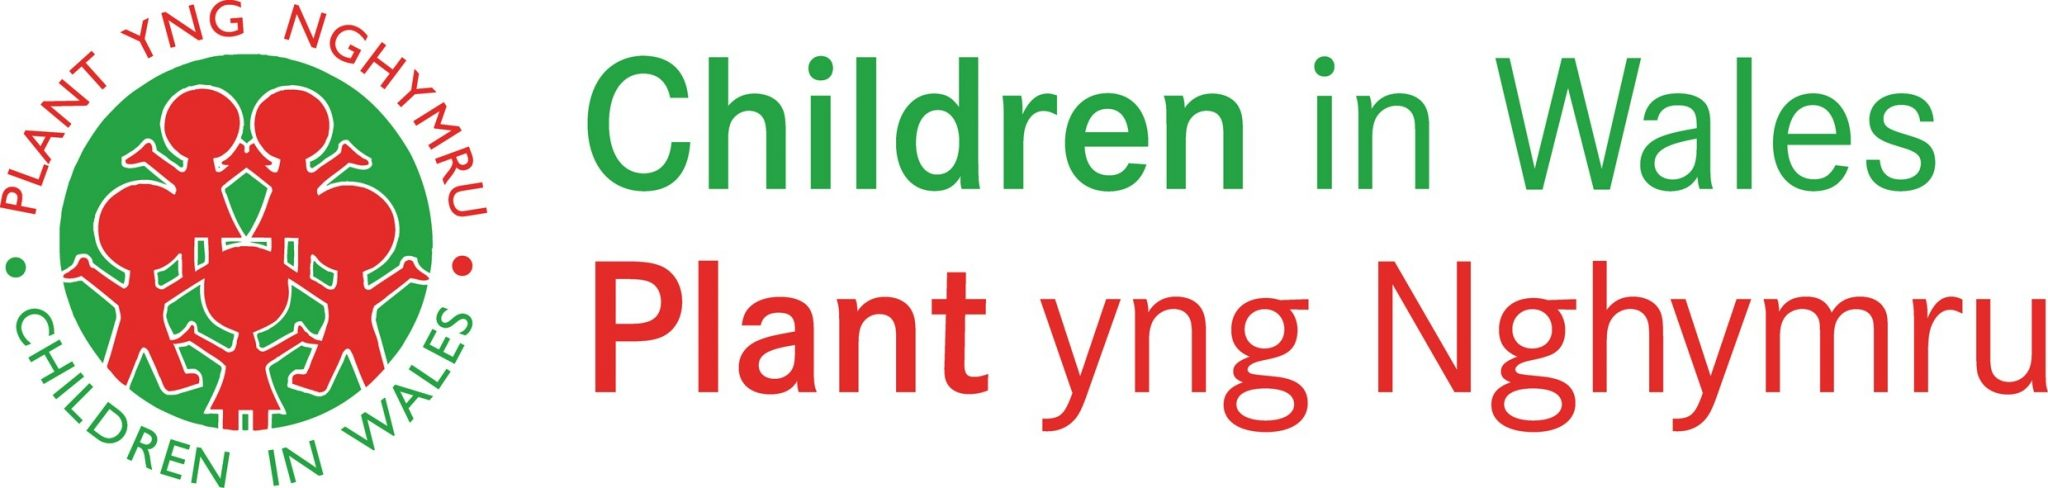 Children-in-Wales-Logo-and-Text